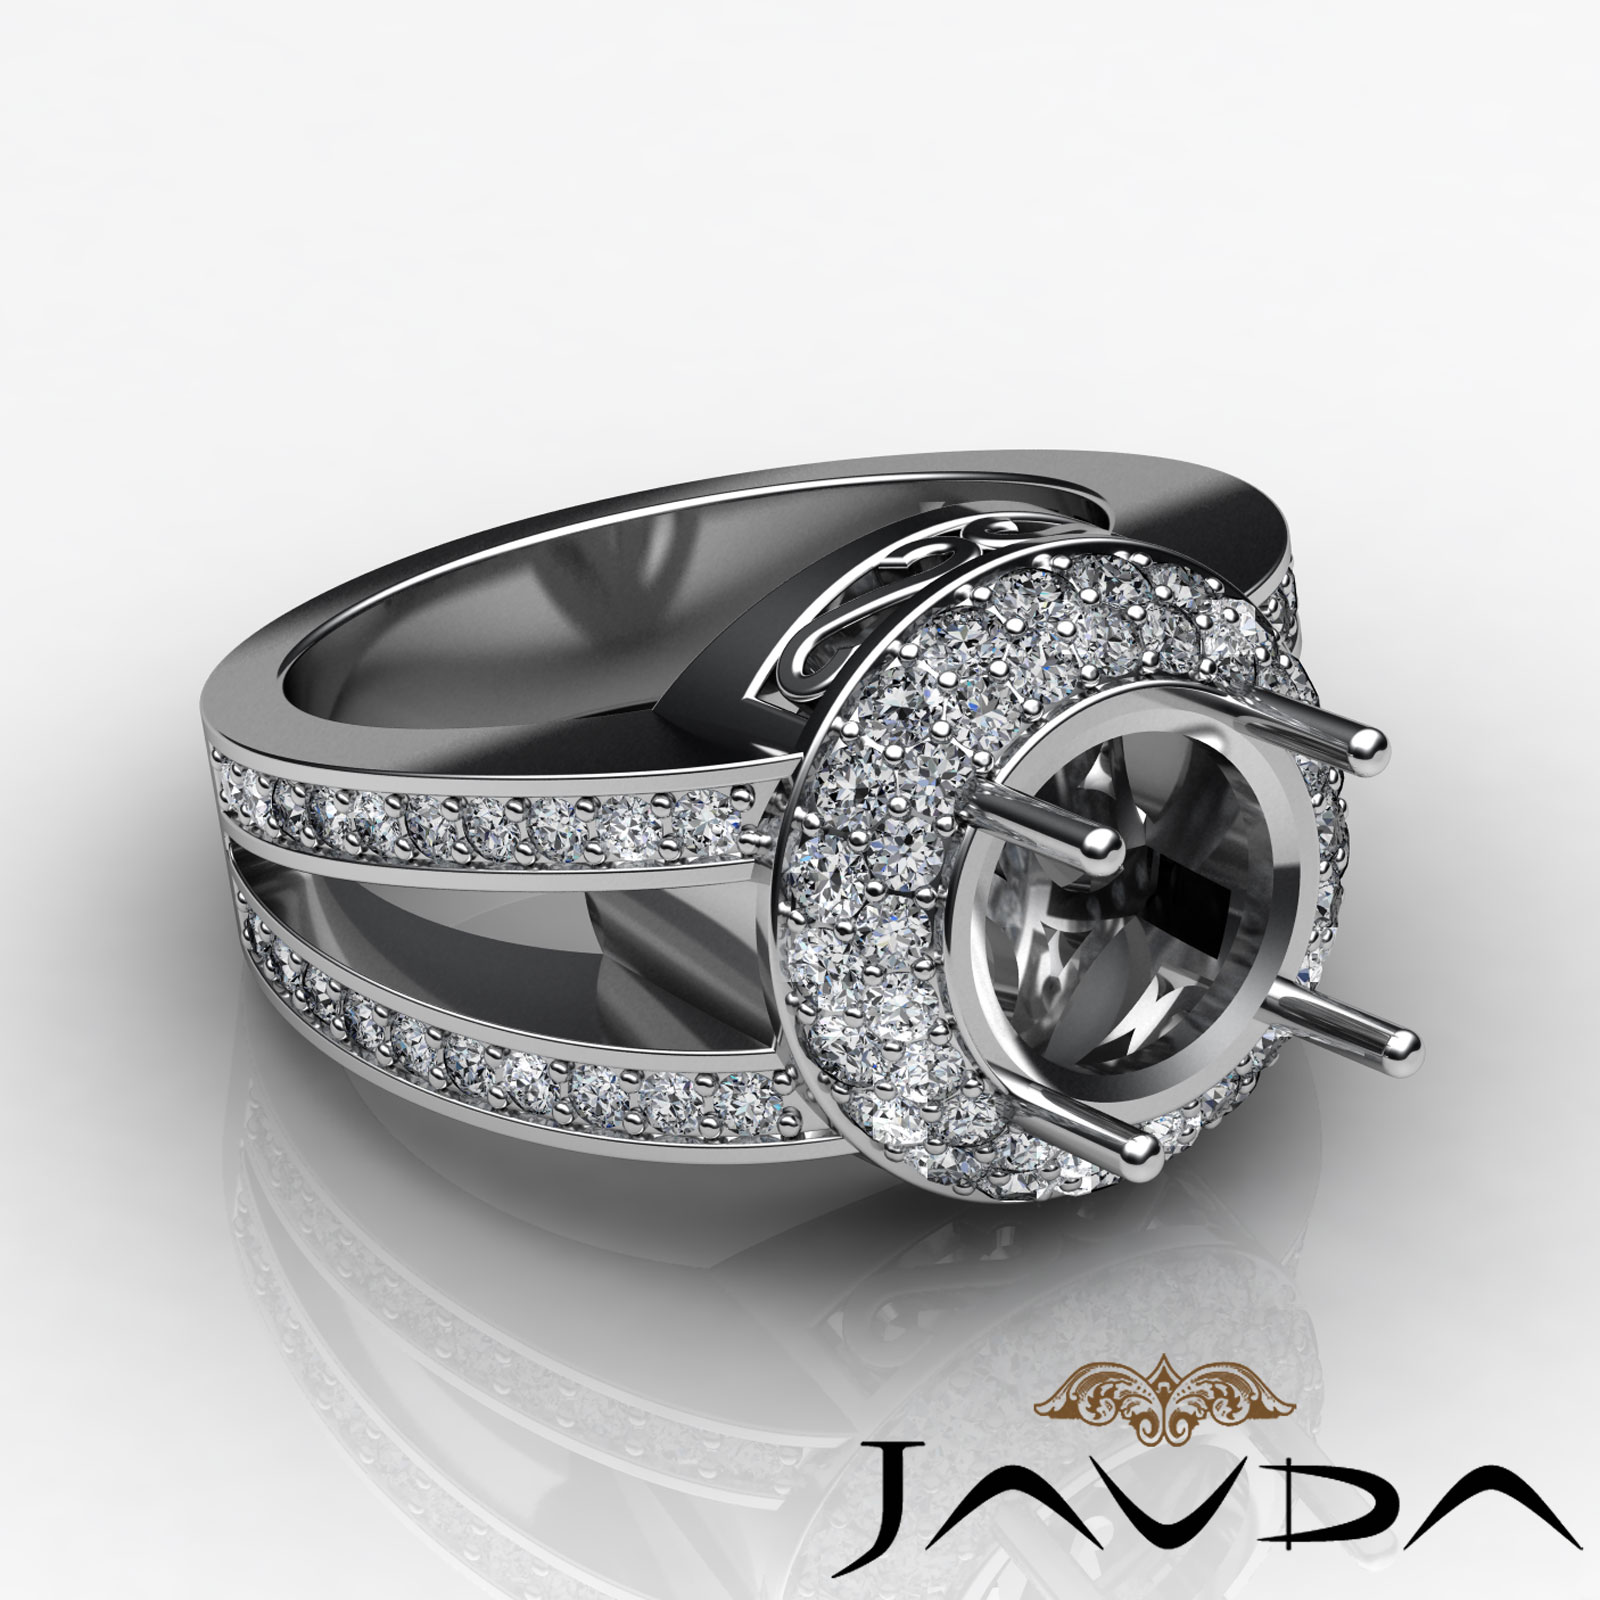 Halo pave diamond anniversary filigree ring platinum